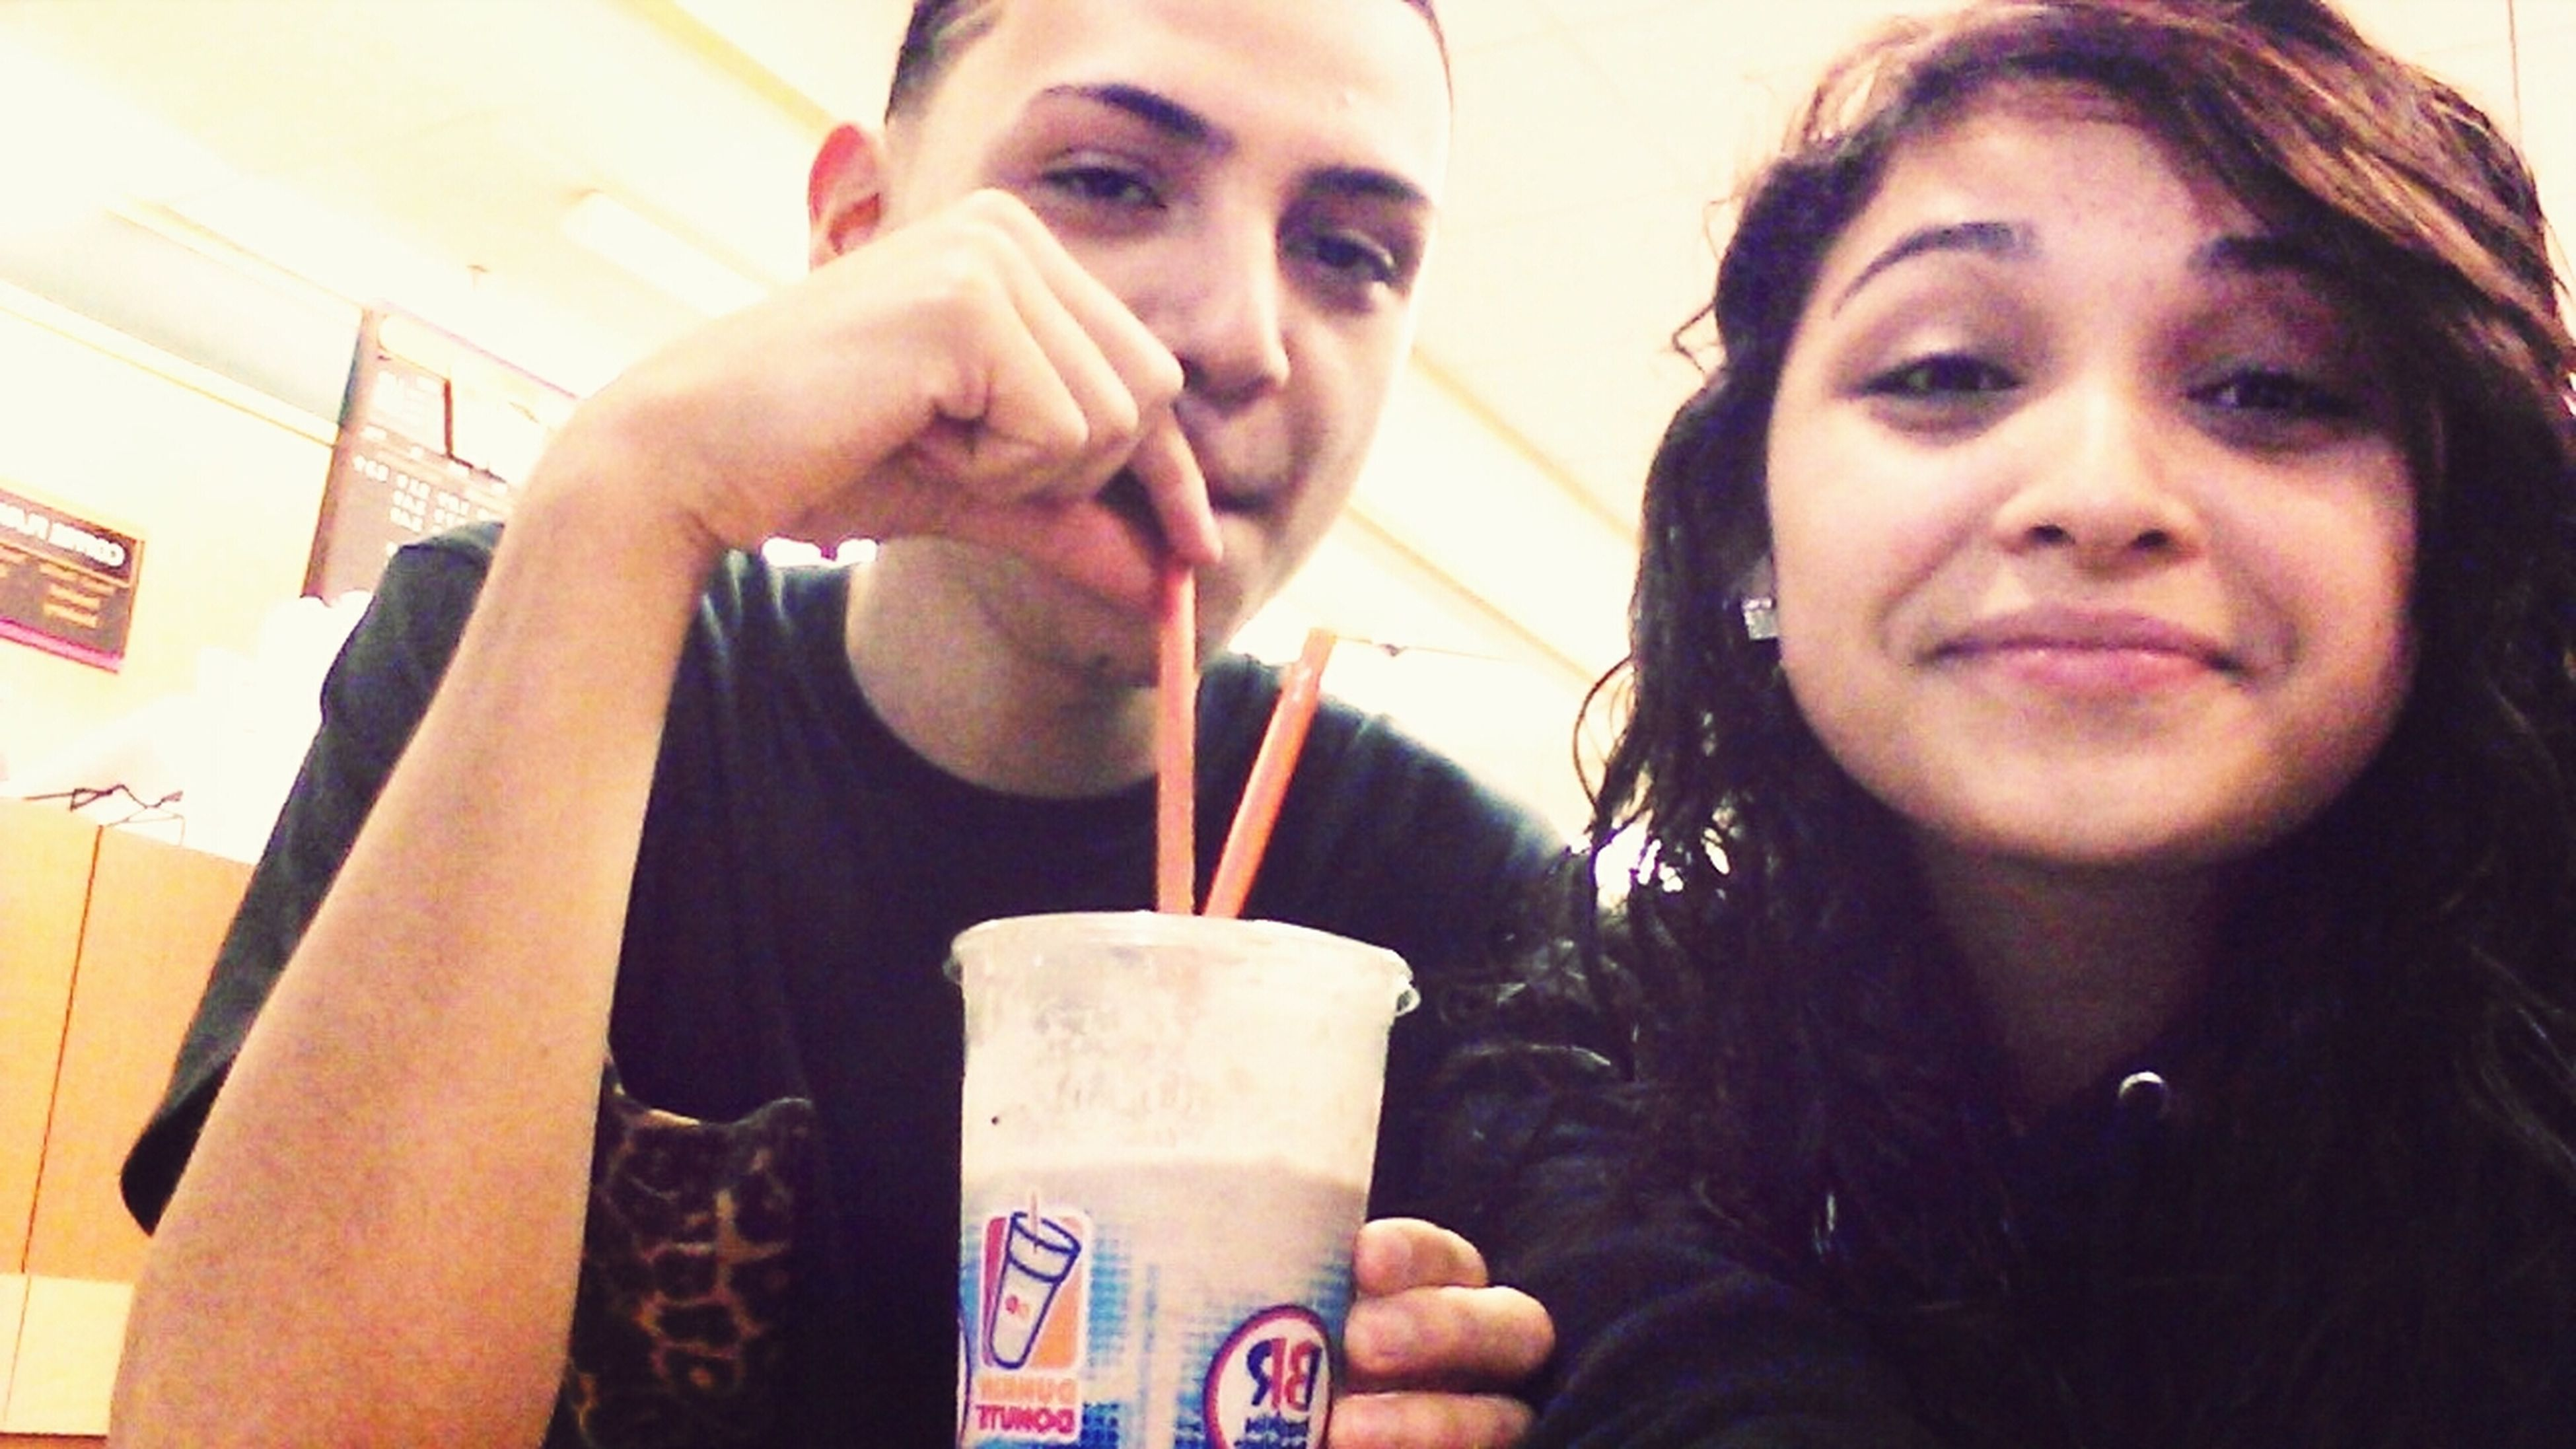 At Dunkin Donuts with le babeee ??